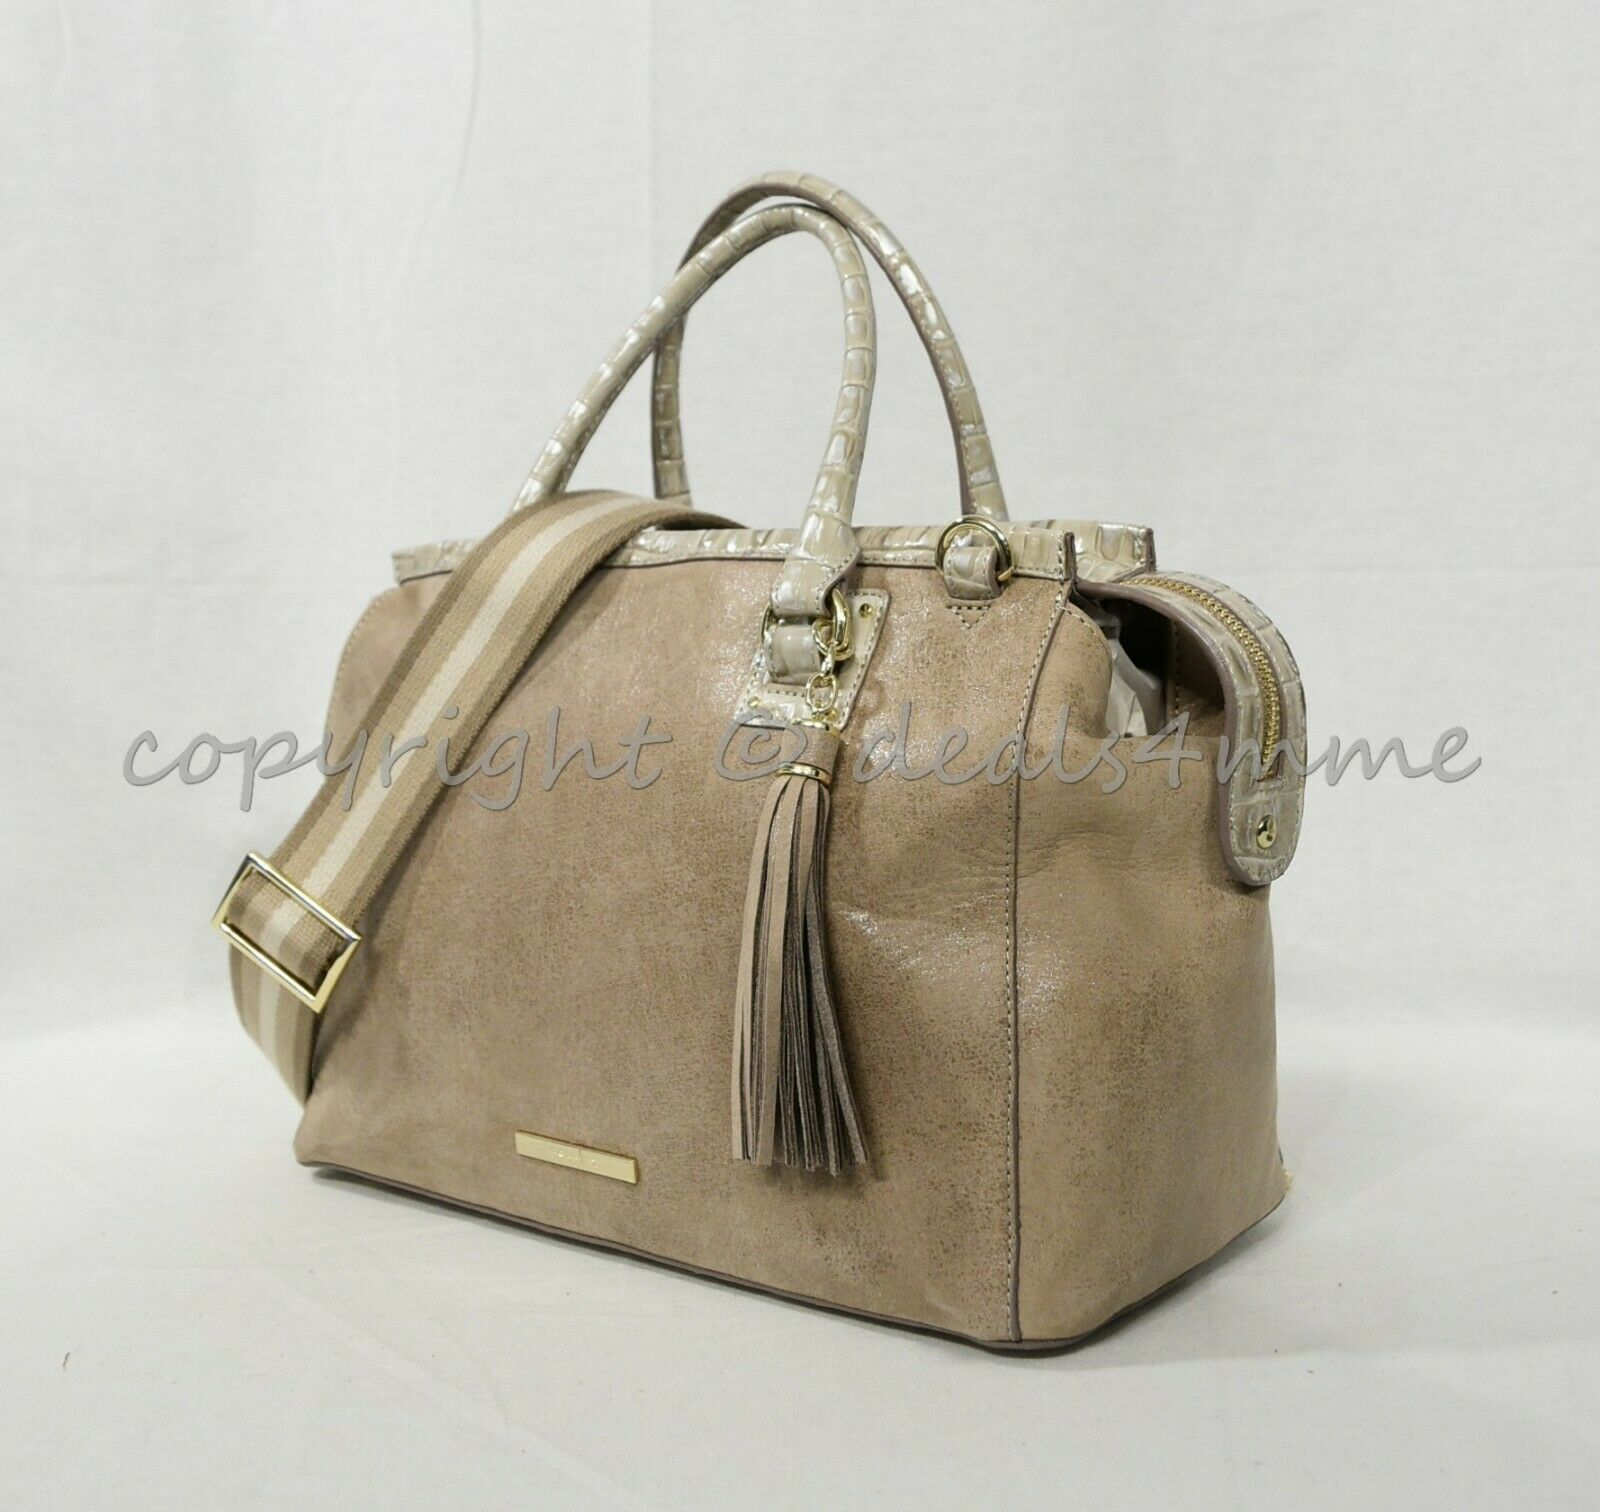 Primary image for NWT Brahmin Schooner Suede Leather Satchel/Shoulder Bag in Warm Gray Reynolds